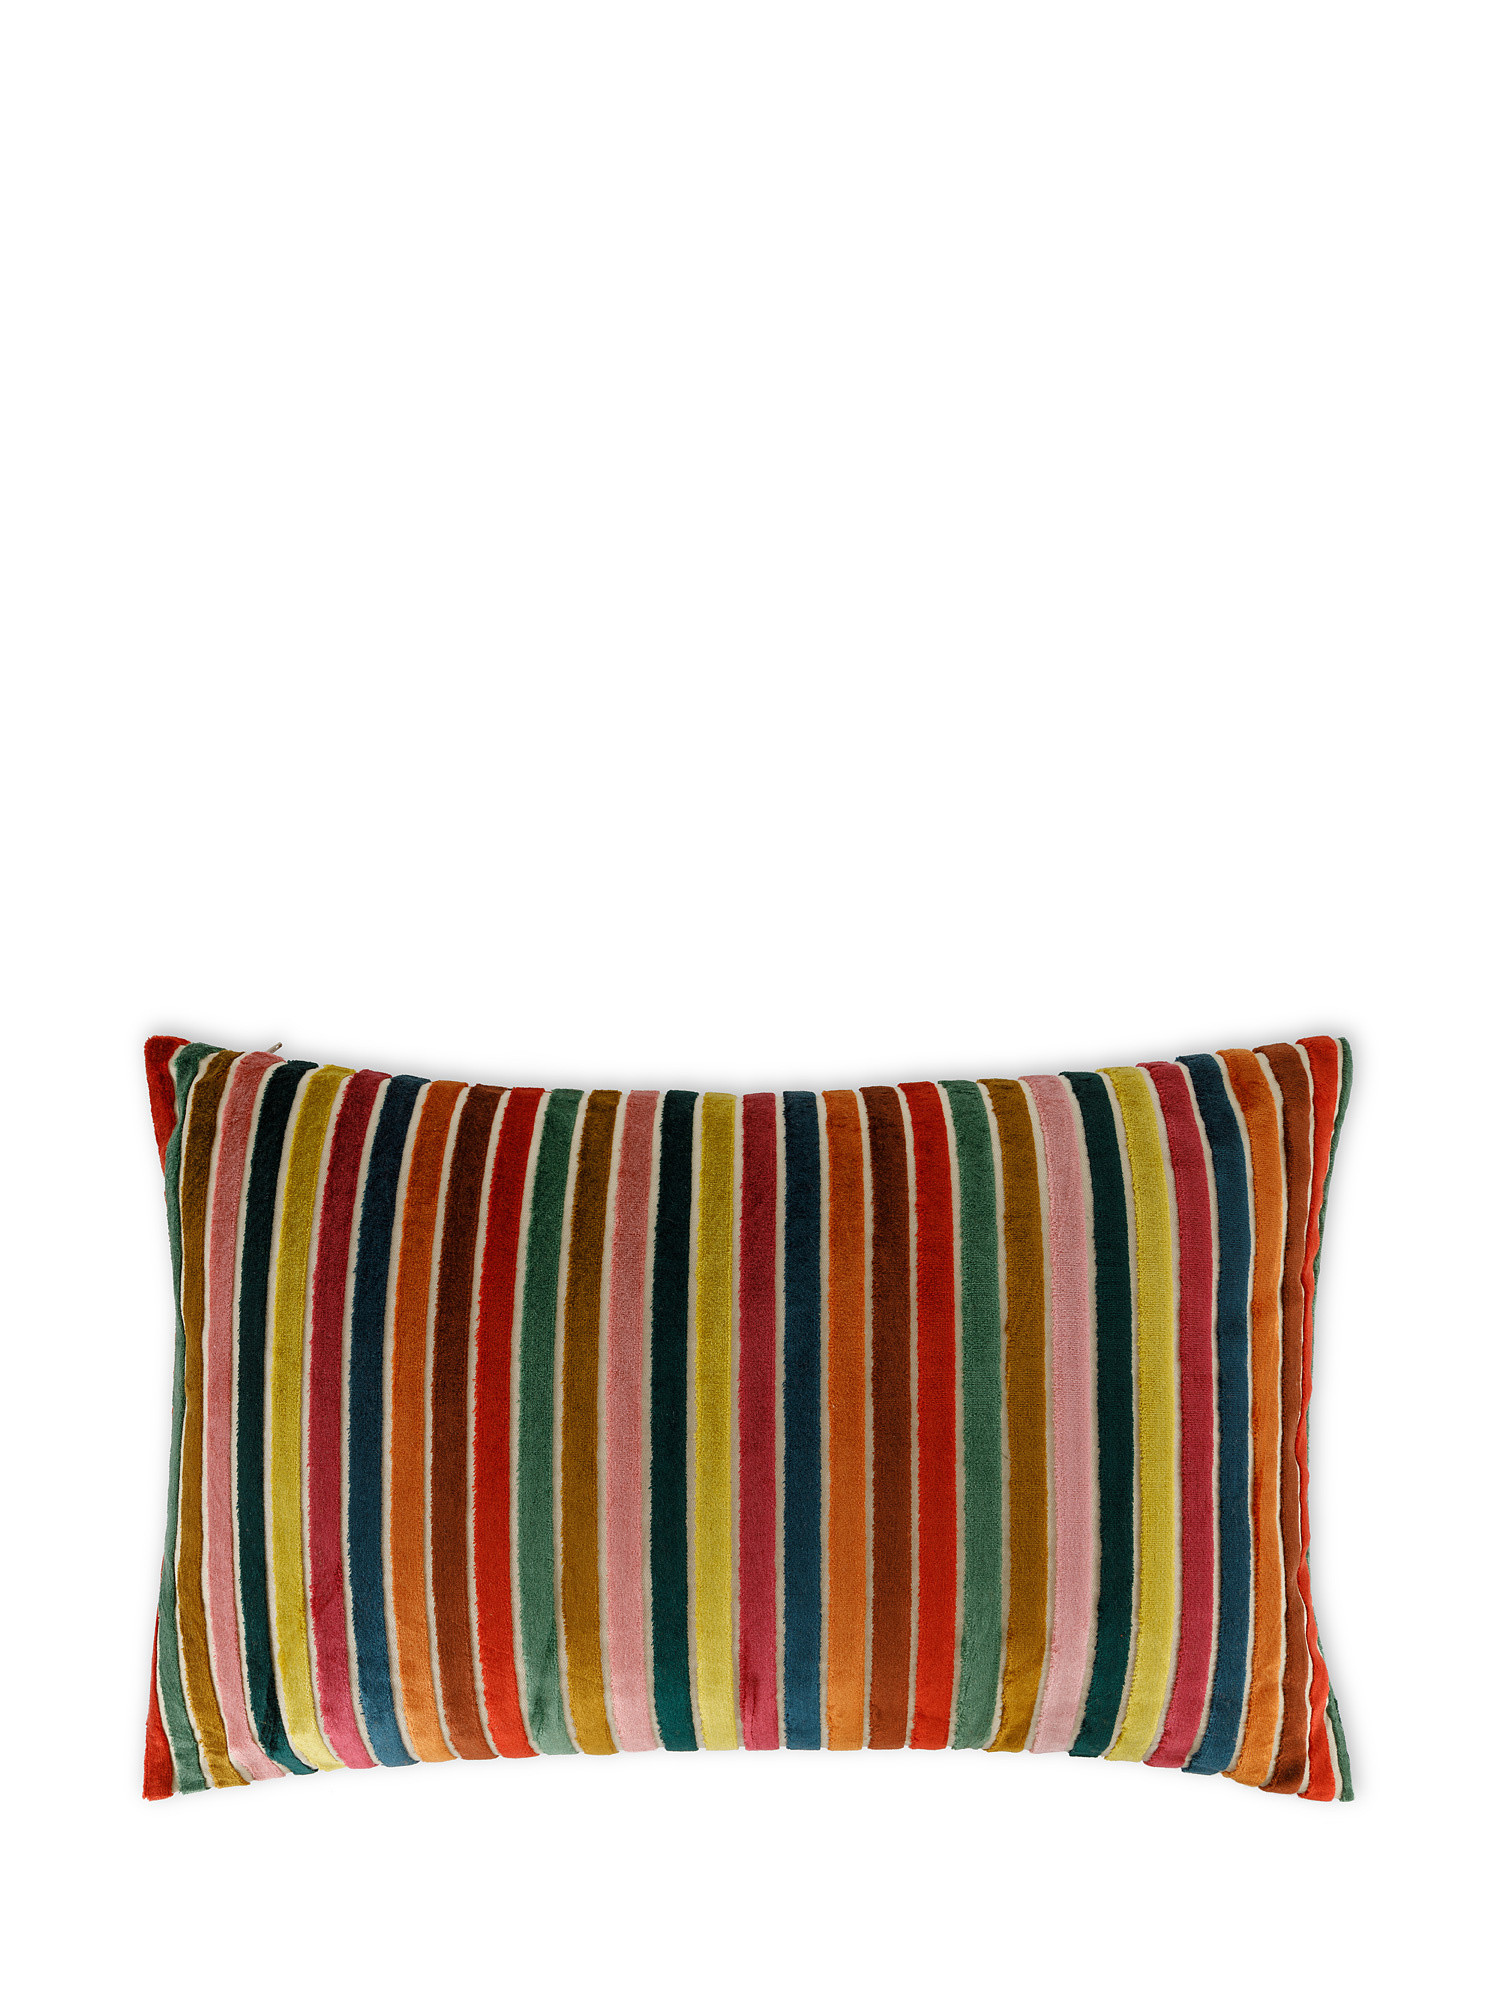 Cuscino jacquard a righe 35x55cm, Multicolor, large image number 0